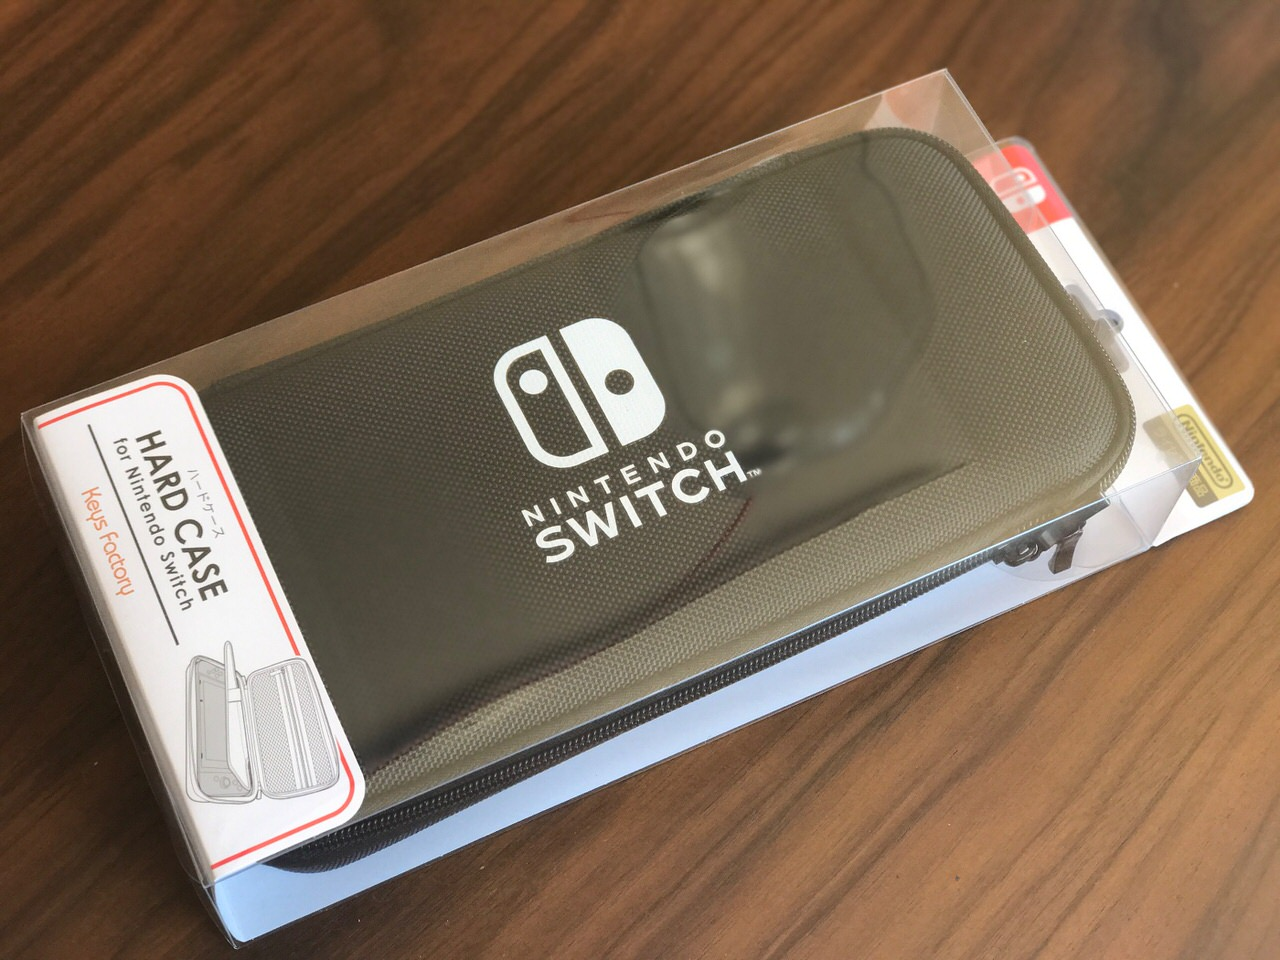 Nintendo switch setup 6794